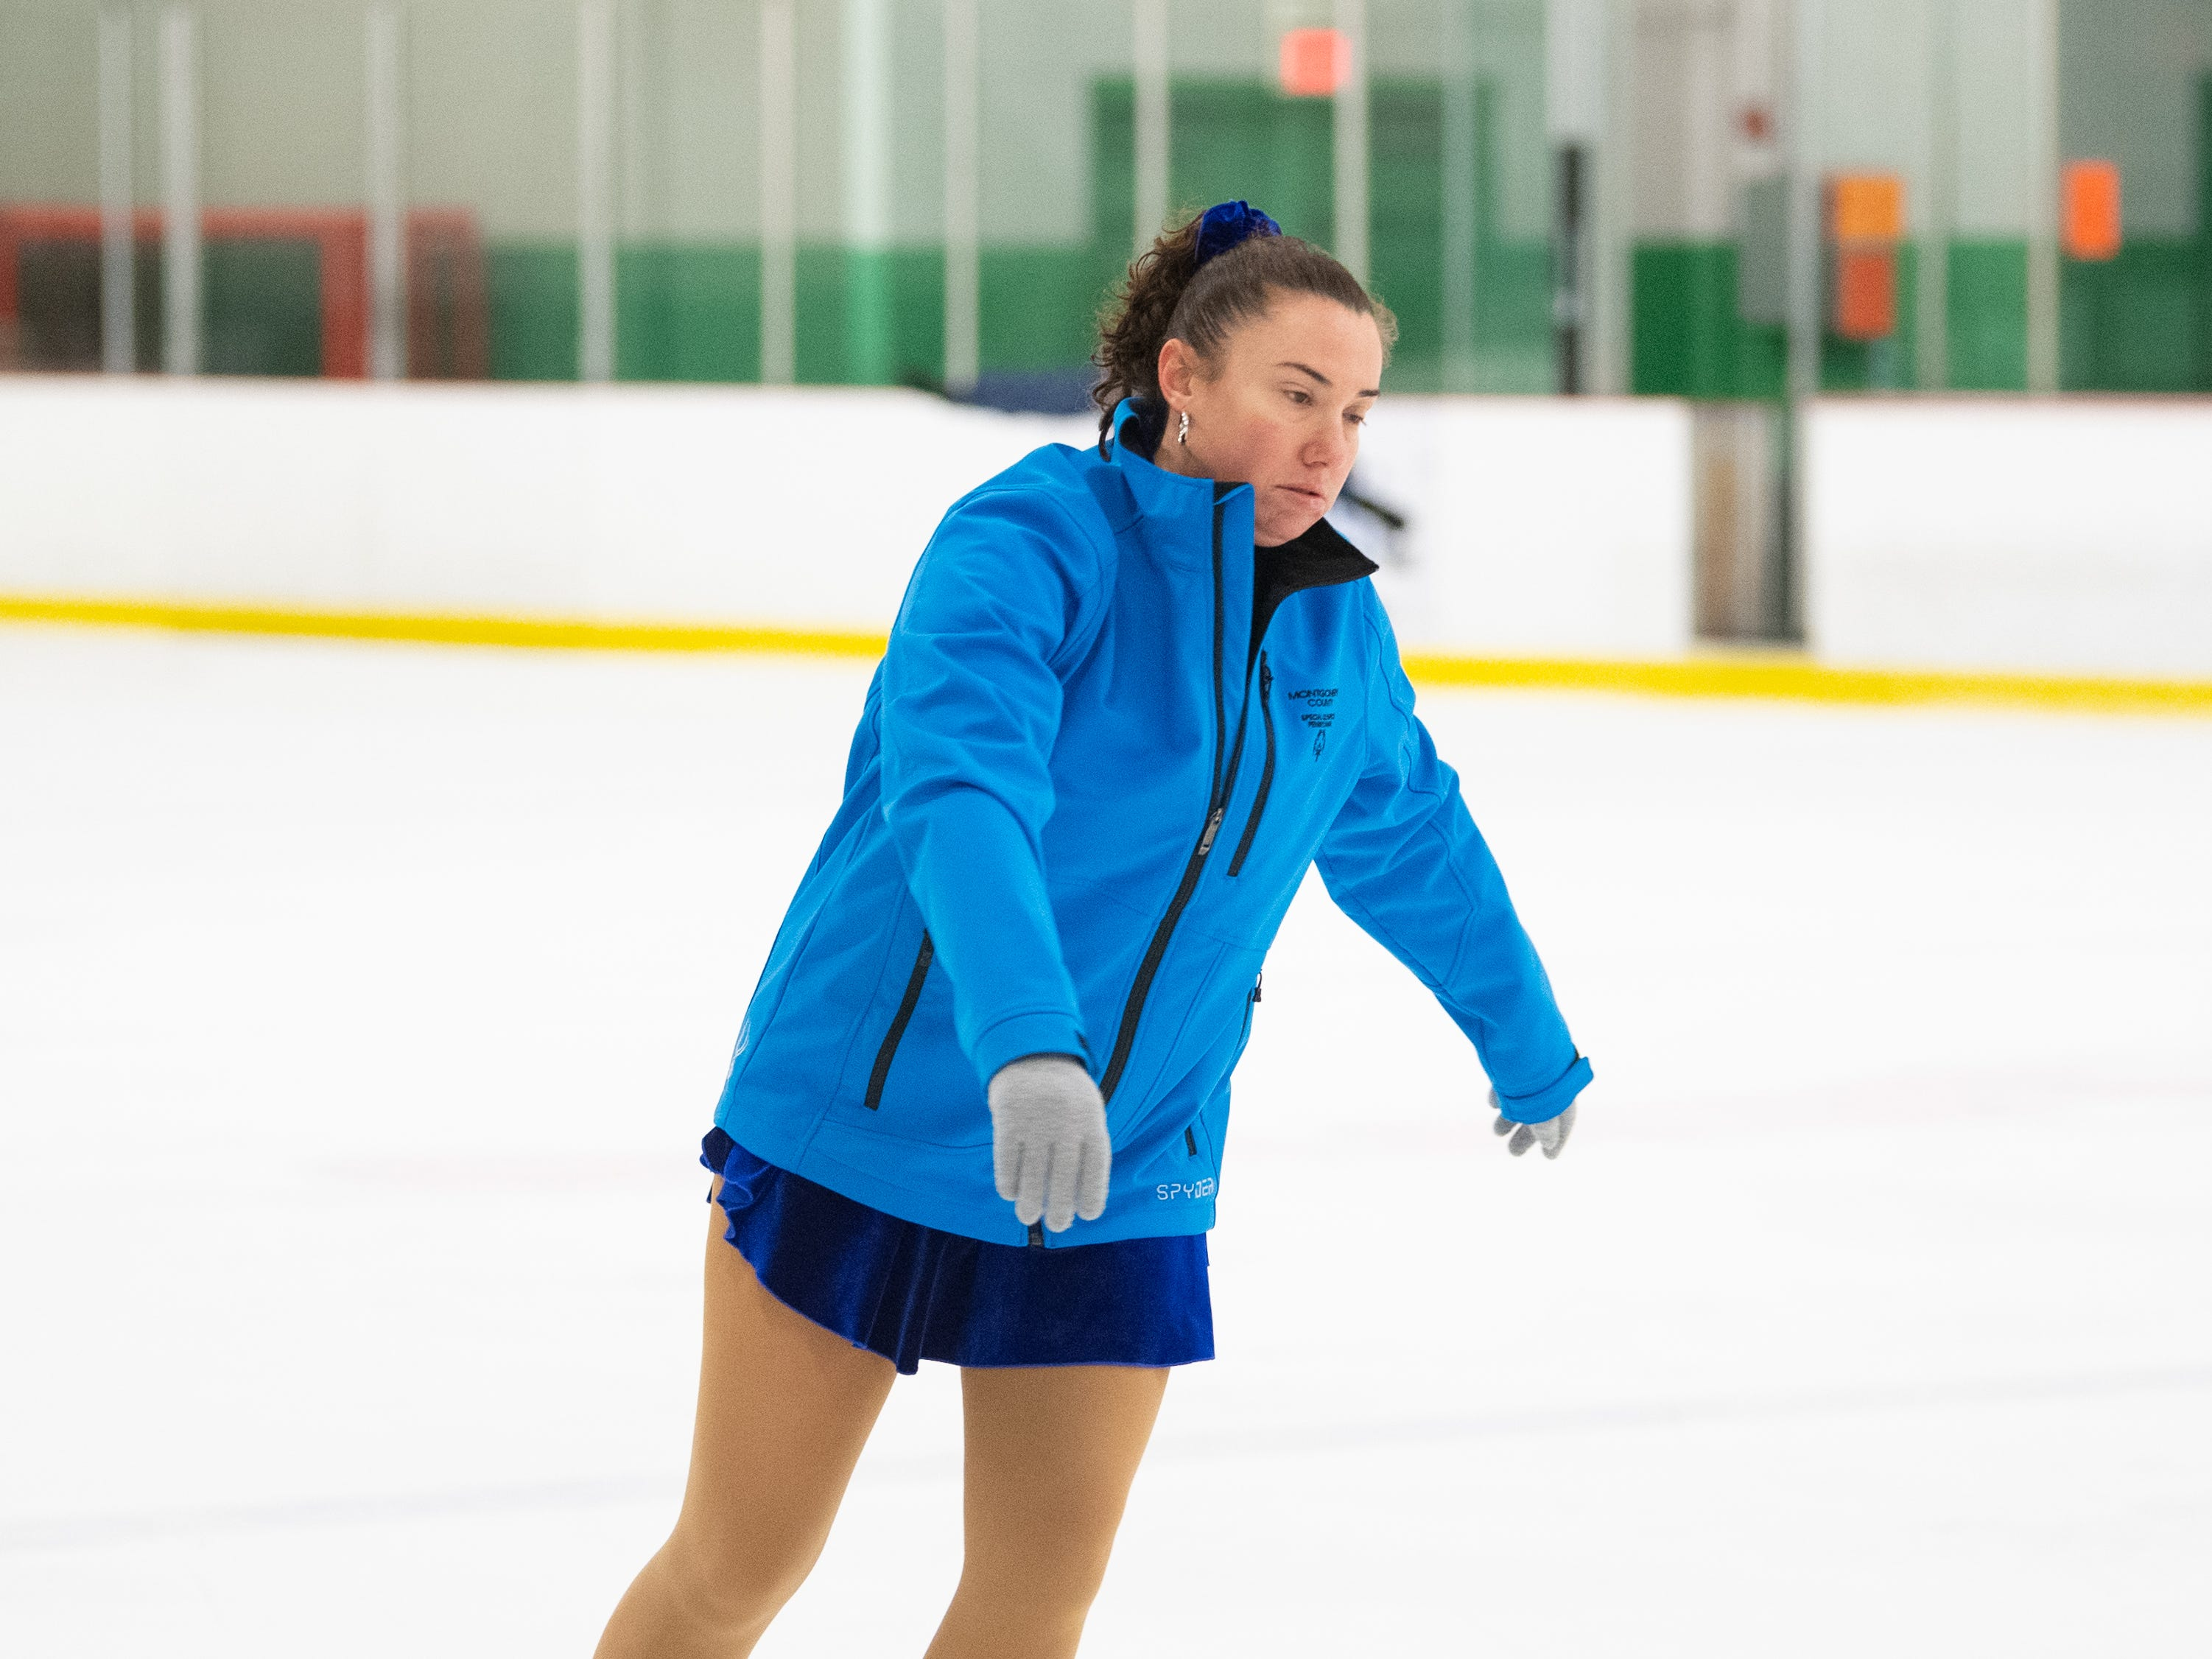 The Special Olympics Pennsylvania Indoor Winter Games features a figure skating competition, March 2, 2019.